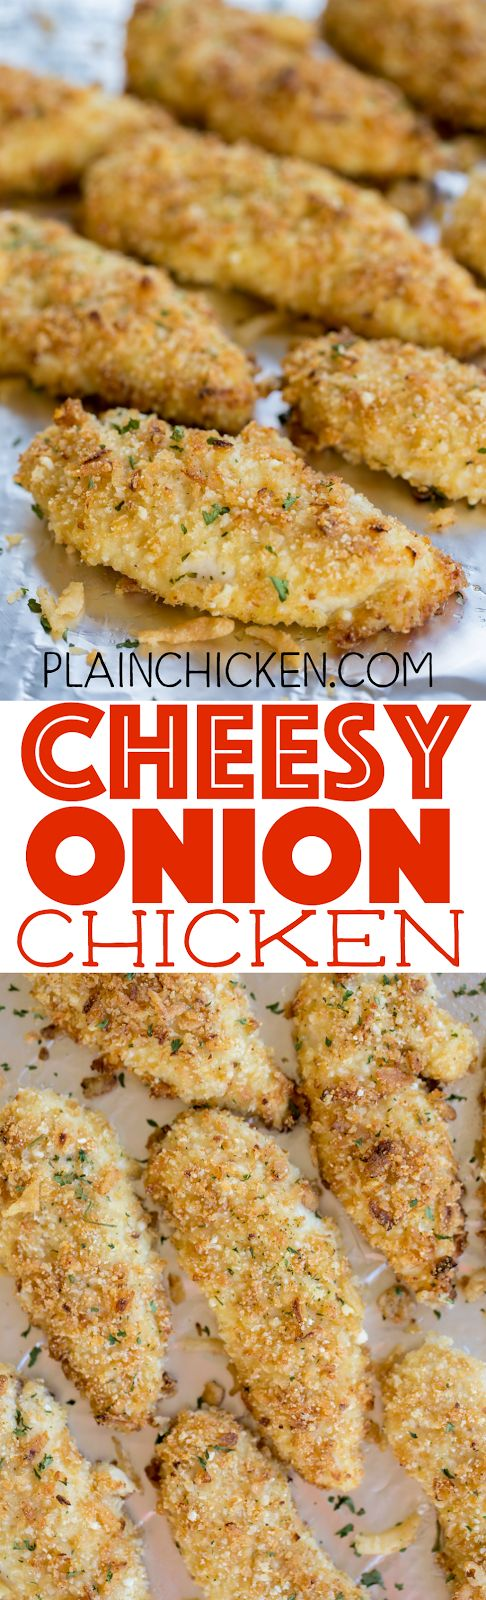 Cheesy Onion Chicken - chicken tenders coated with french fried onions, parmesan cheese, panko bread crumbs and garlic.The flavor is FANTASTIC! Baked not fried! Can make ahead and freeze for later. Great as a main dish, on top of a salad or in a wrap. Everyone LOVES this chicken!